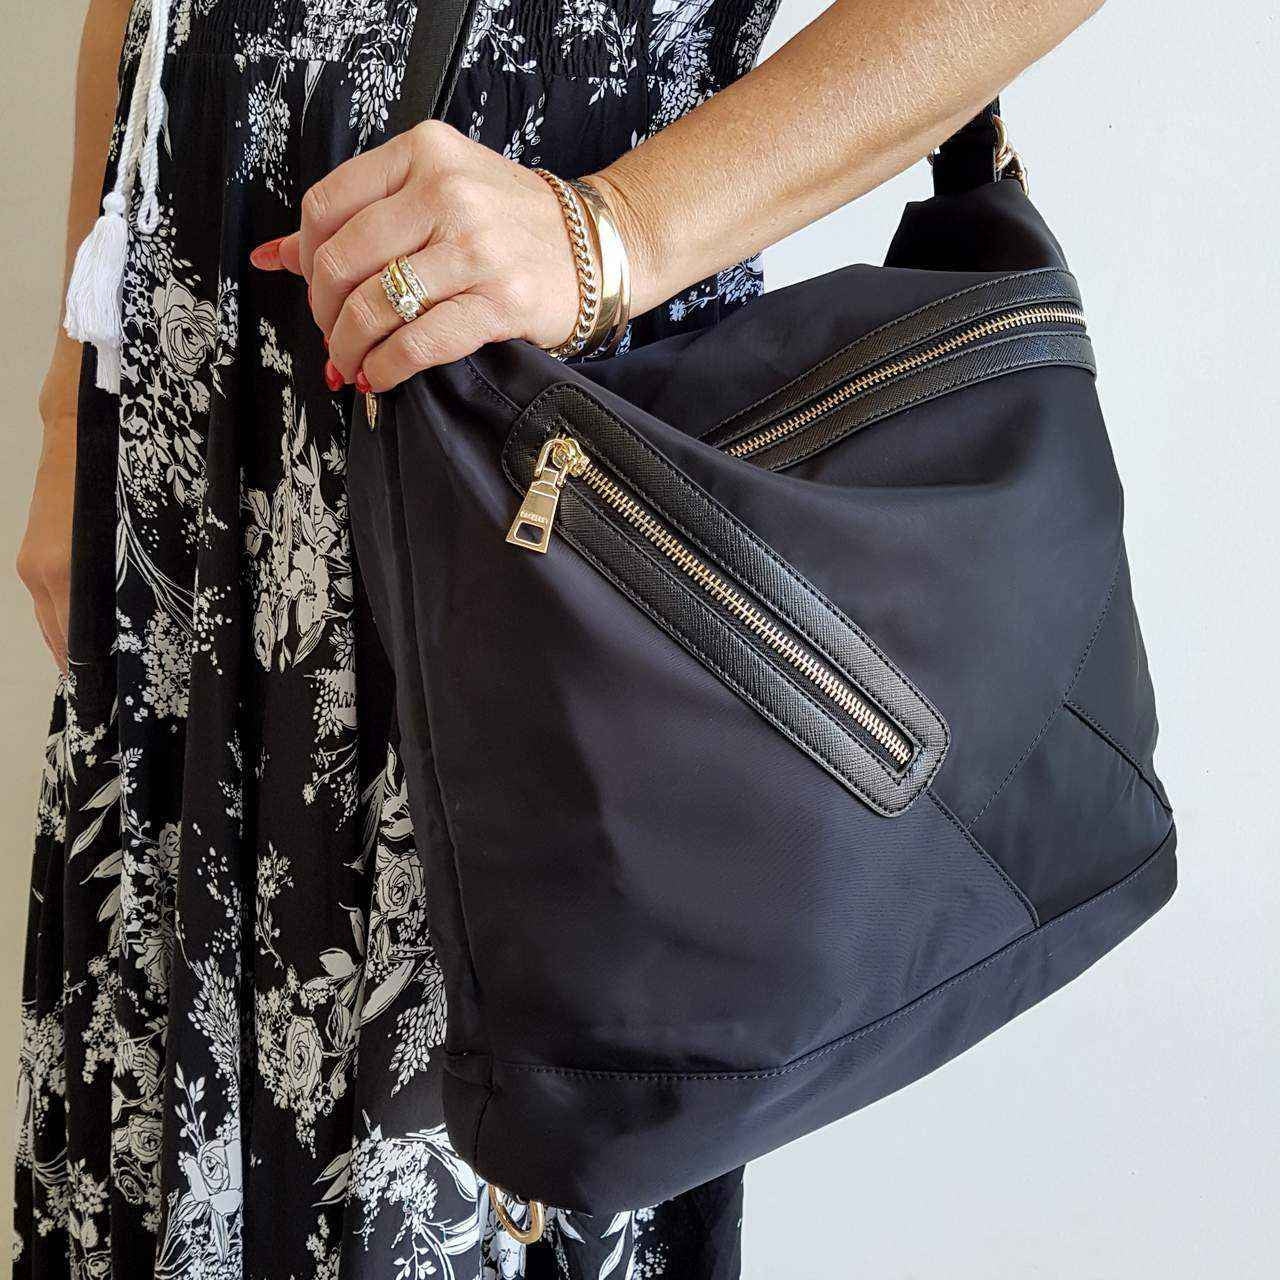 Soft nylon twill handbag that converts into backpack with zip features.  Black ... 8215207f626fb